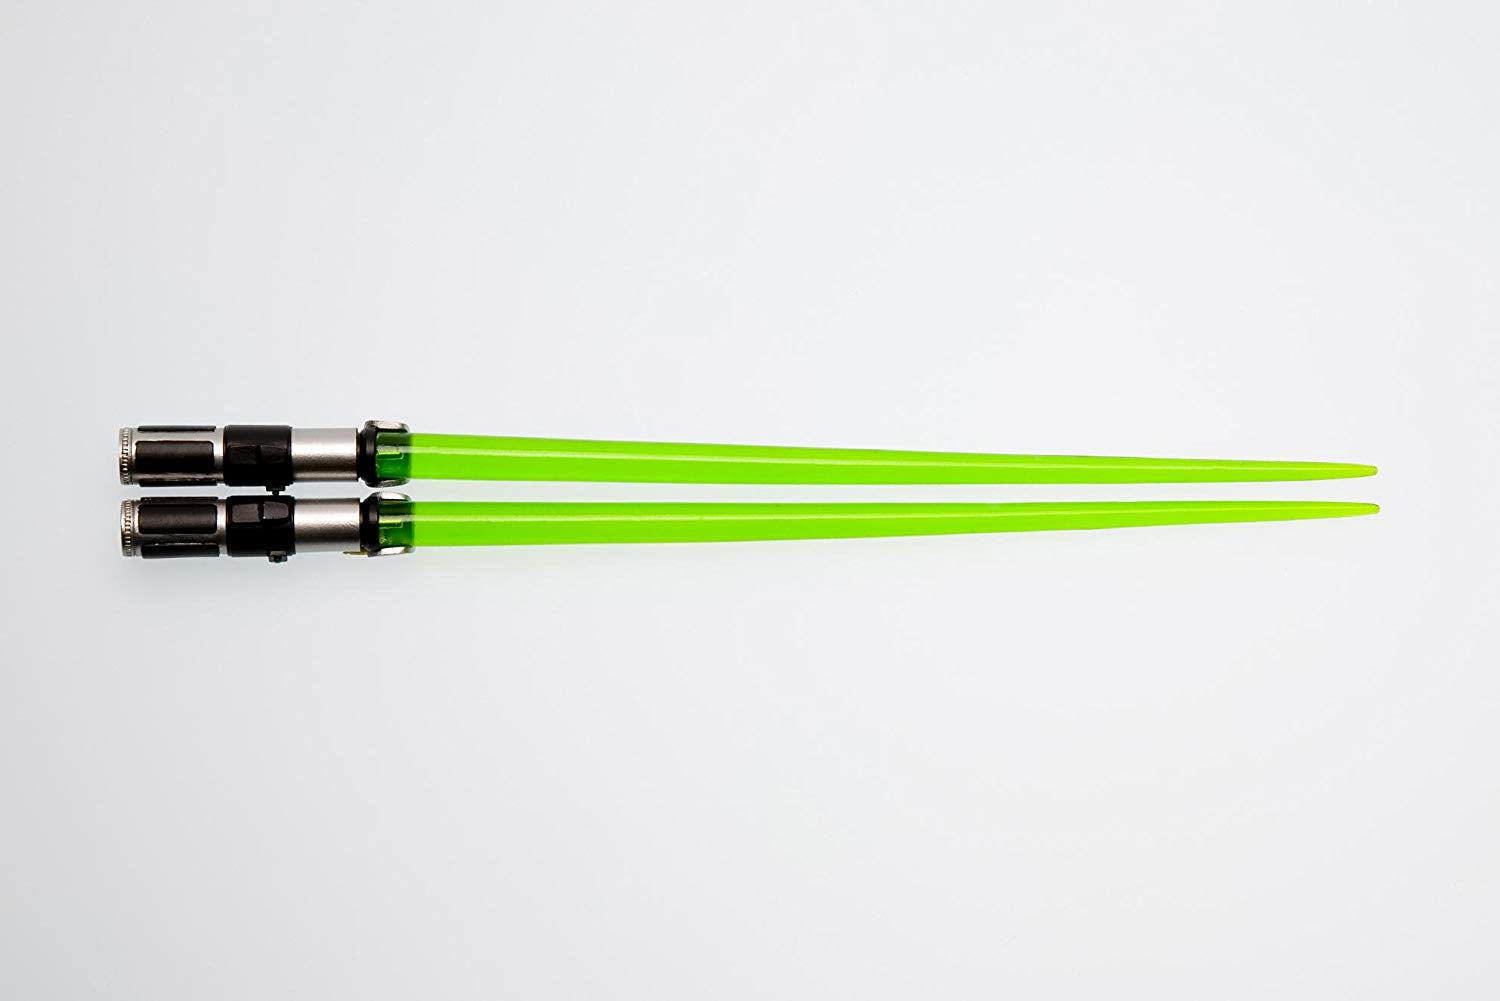 Star Wars: Yoda EP6 Lightsaber Chopstick